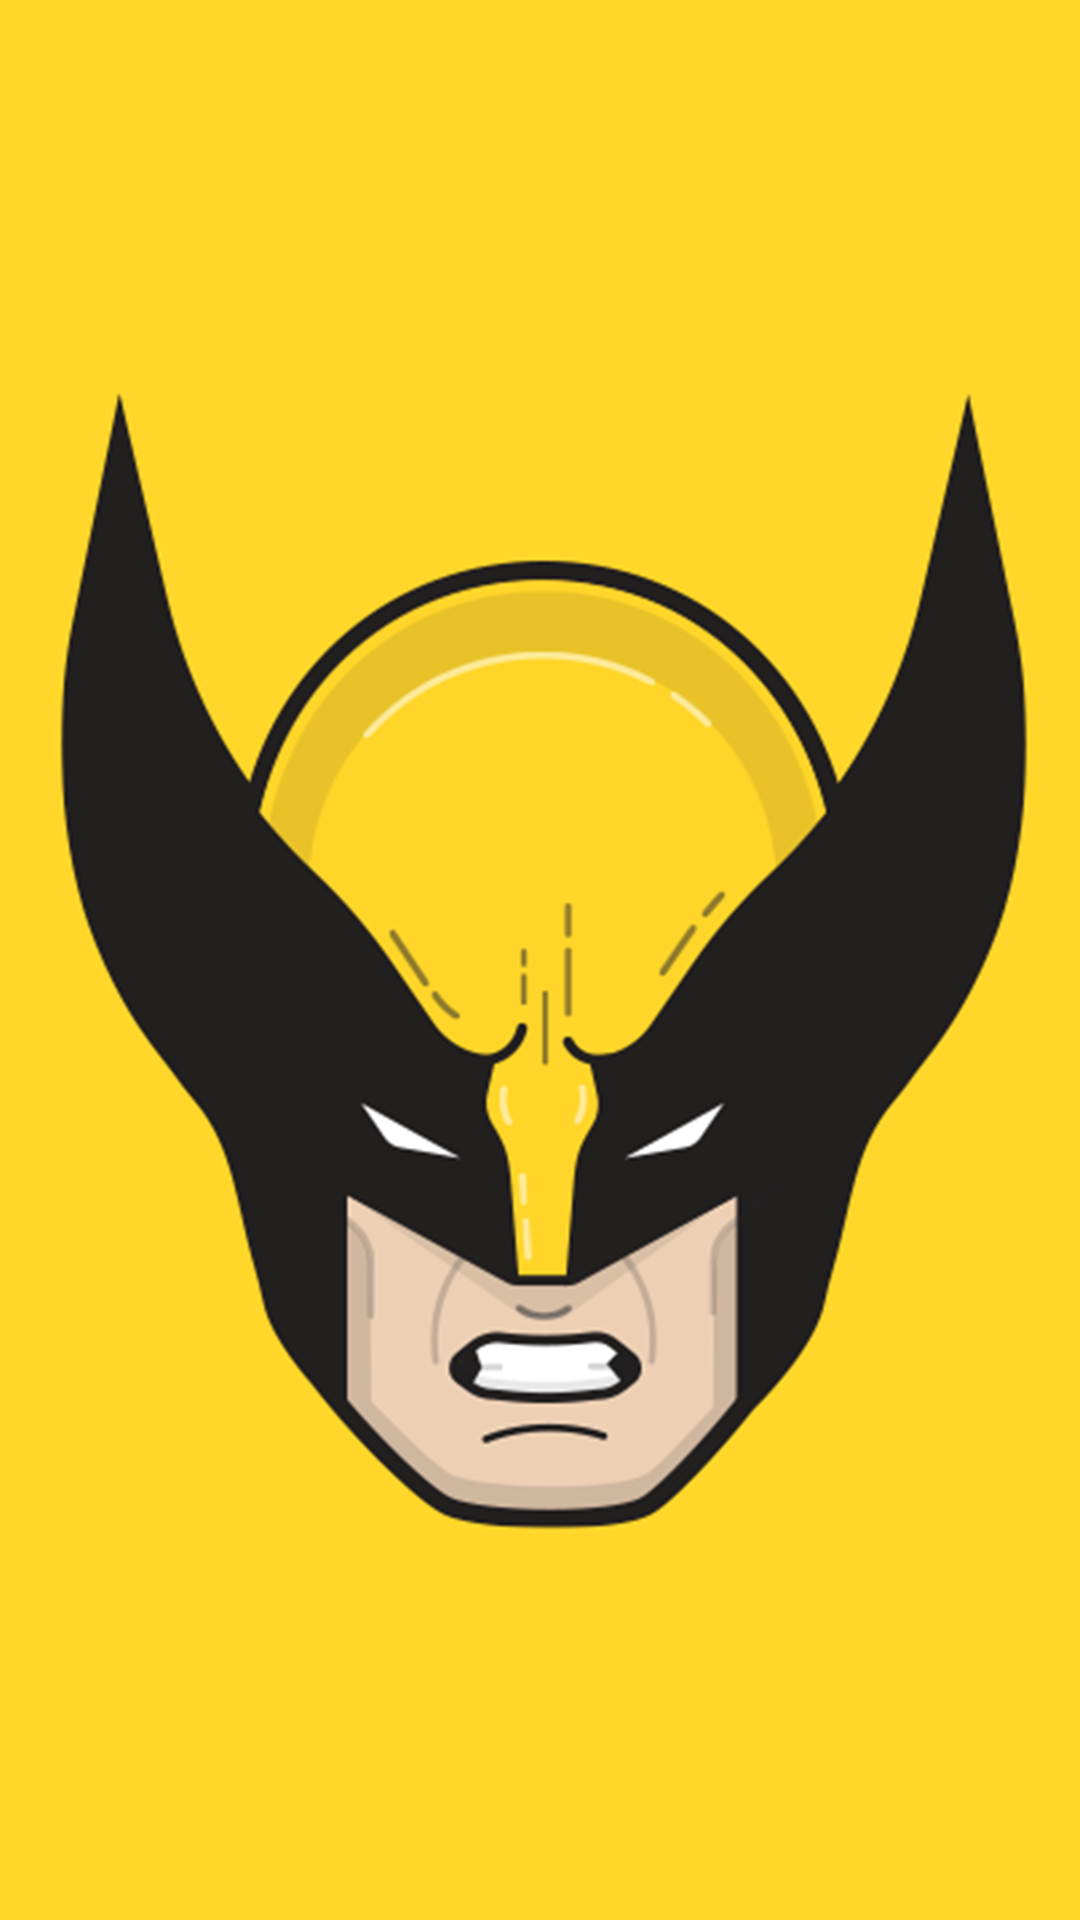 Wolverine clipart wolverine mask. Download the wallpaper iphone